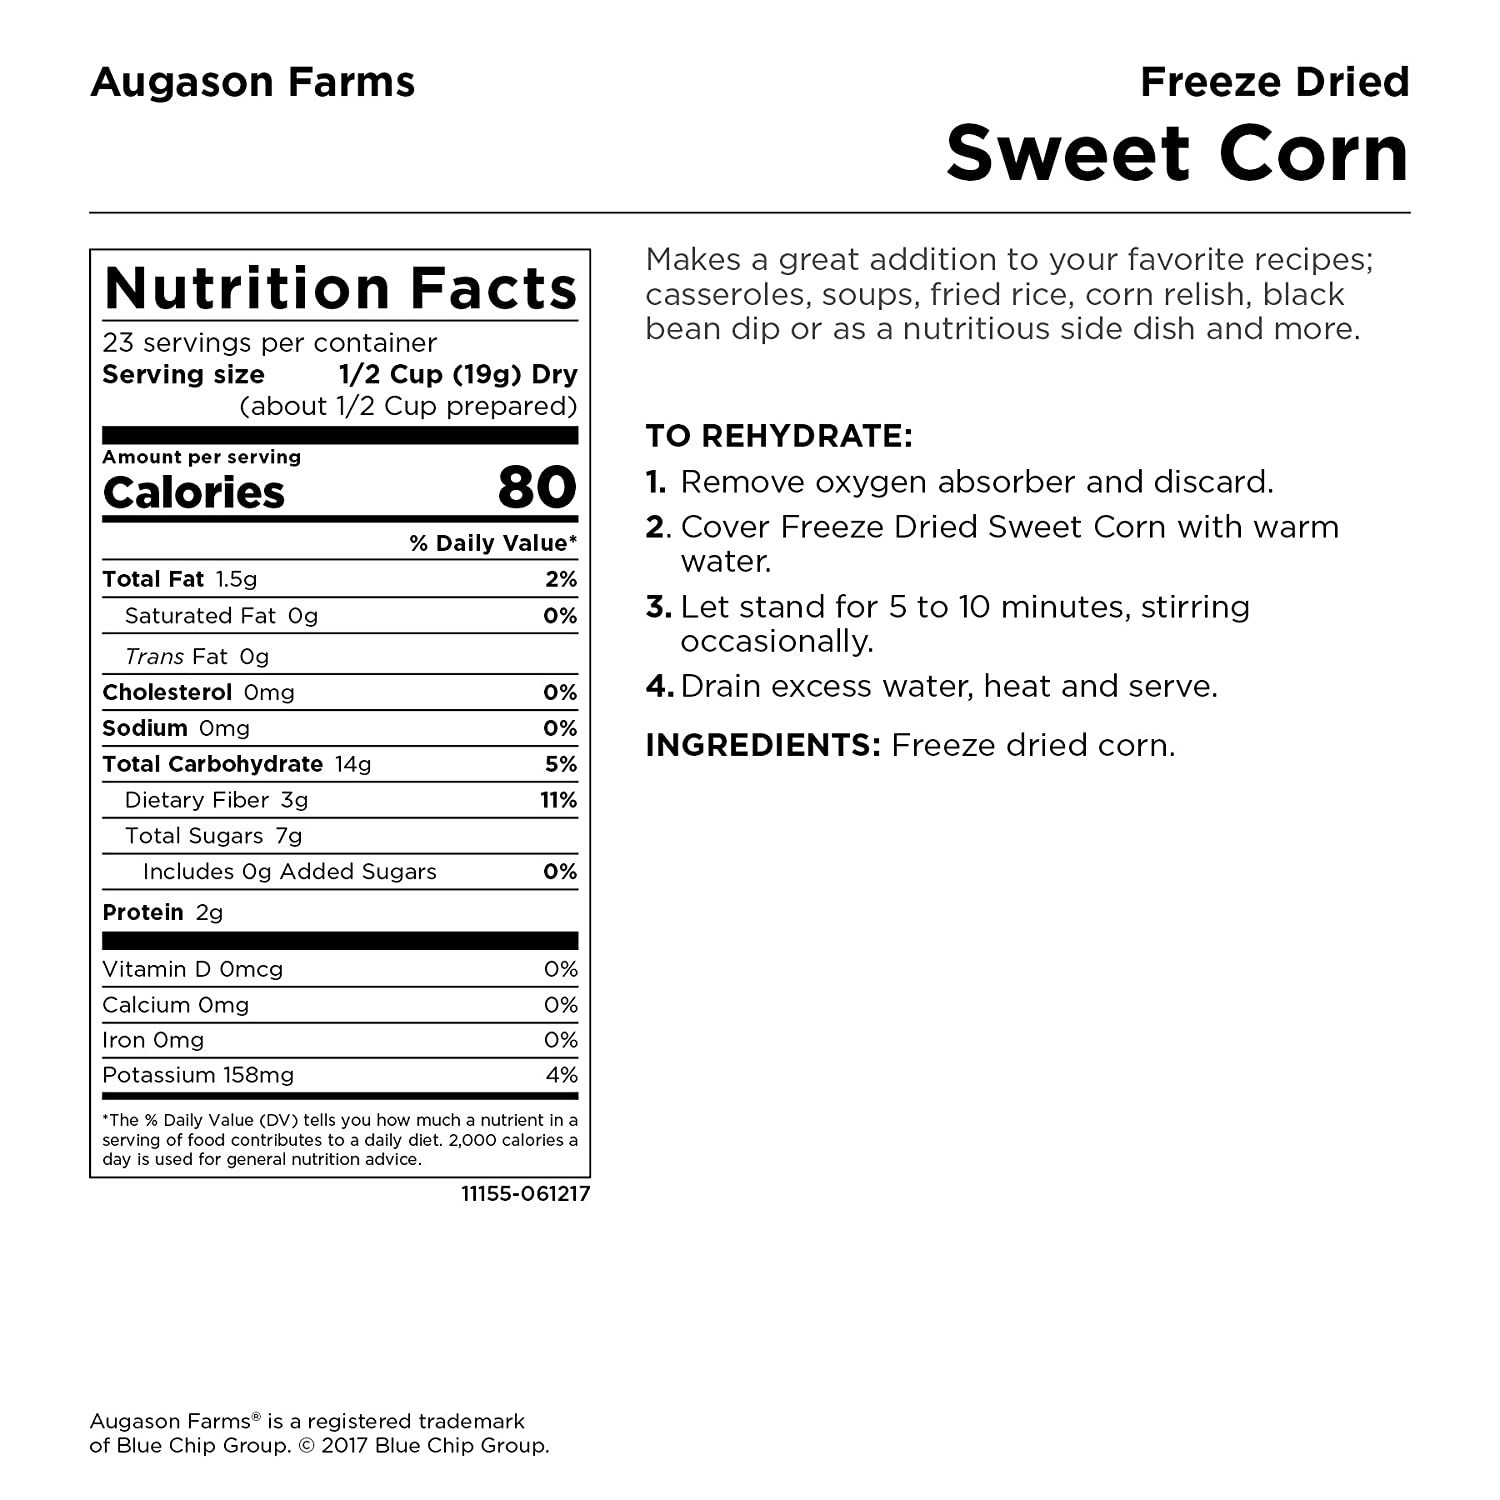 10 and 1 reason to issue a Corn card